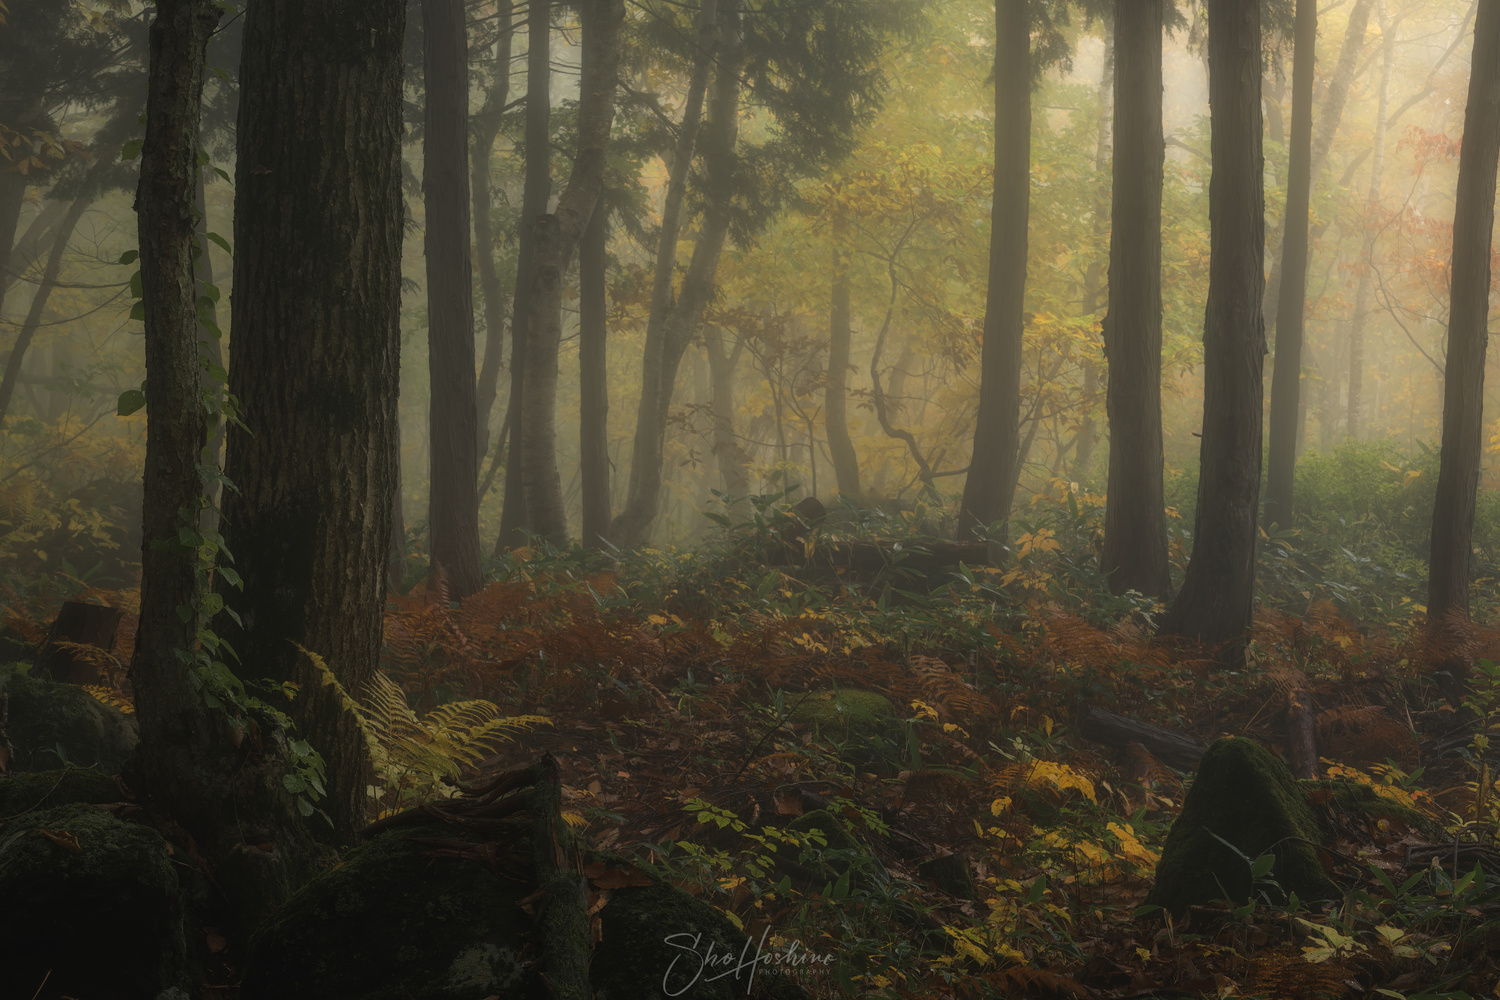 Dreamy forest by Sho Hoshino